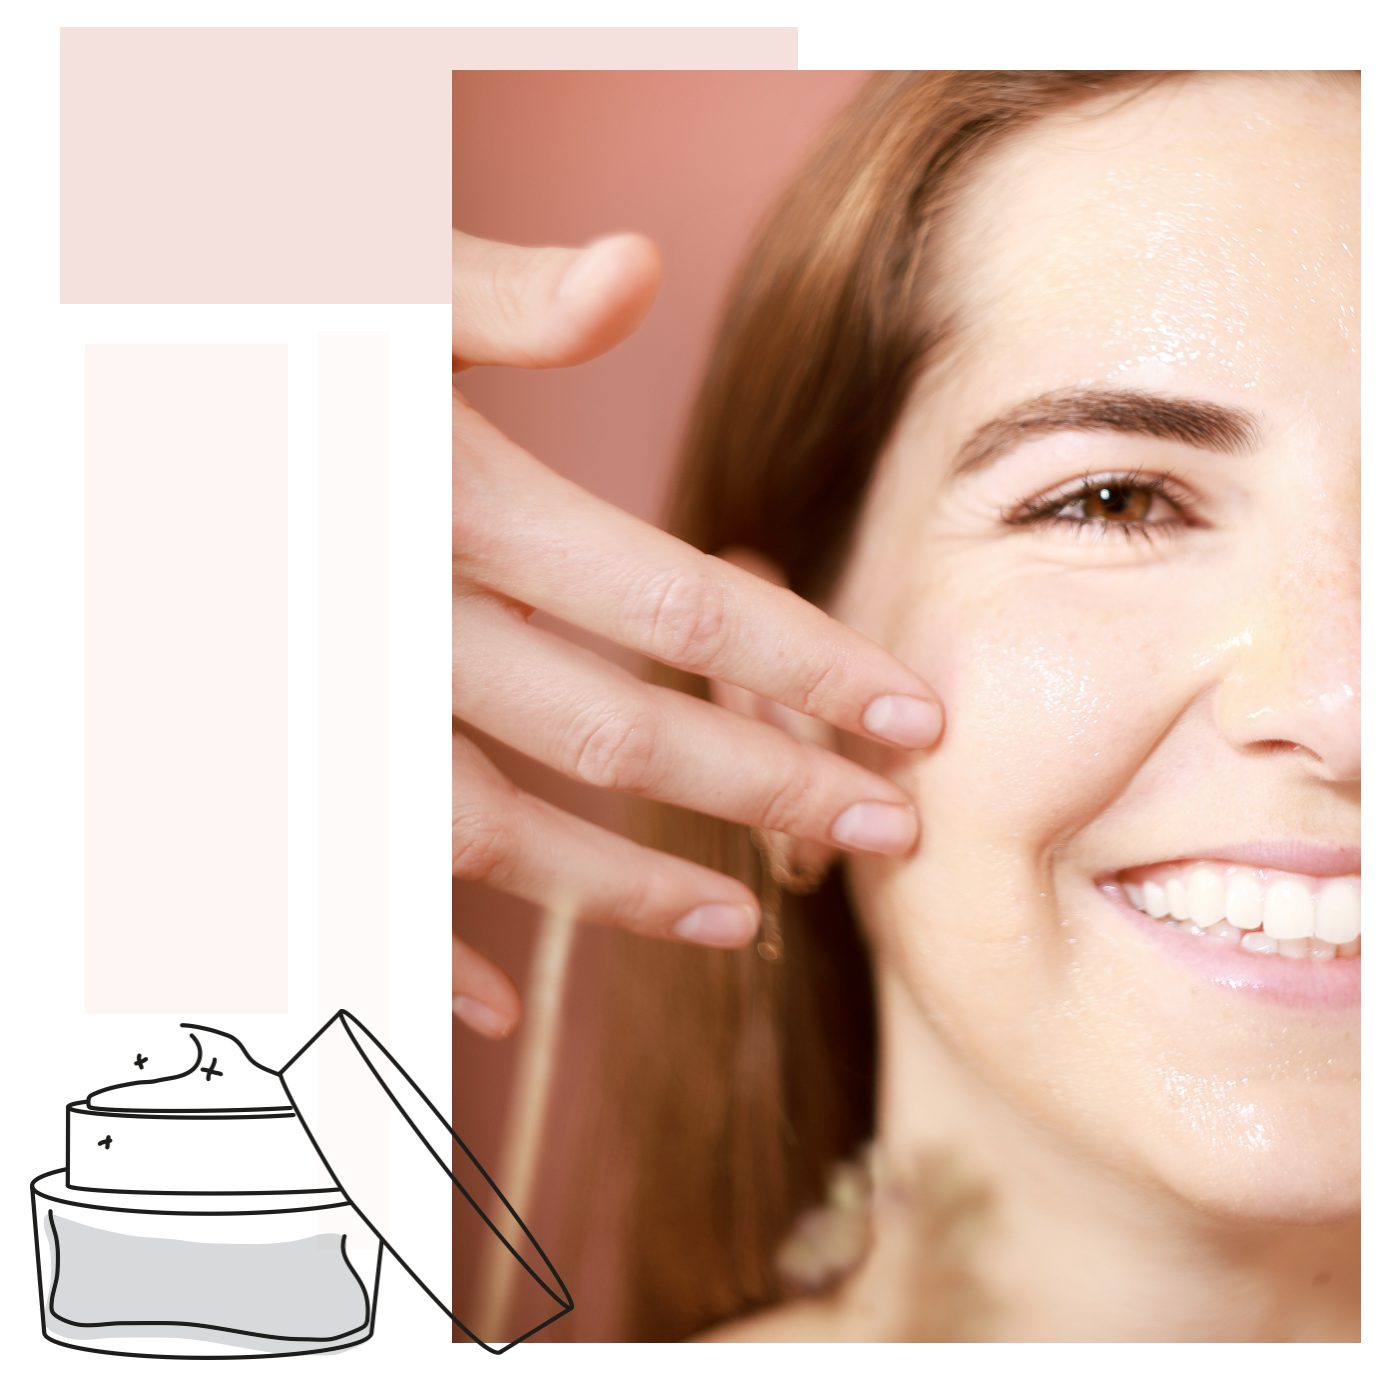 £90/45 mins - The Bestseller - Designed to find your ideal skincare regimeIn-depth skin consultation that includes a detailed Holistic Skinterview, OBSERV Skin Diagnosis, and the Lion/ne Shopping List. The Shopping List is an online profile designed specifically for you, and includes full AM/PM skincare regime with specific brands and products for your skin needs.